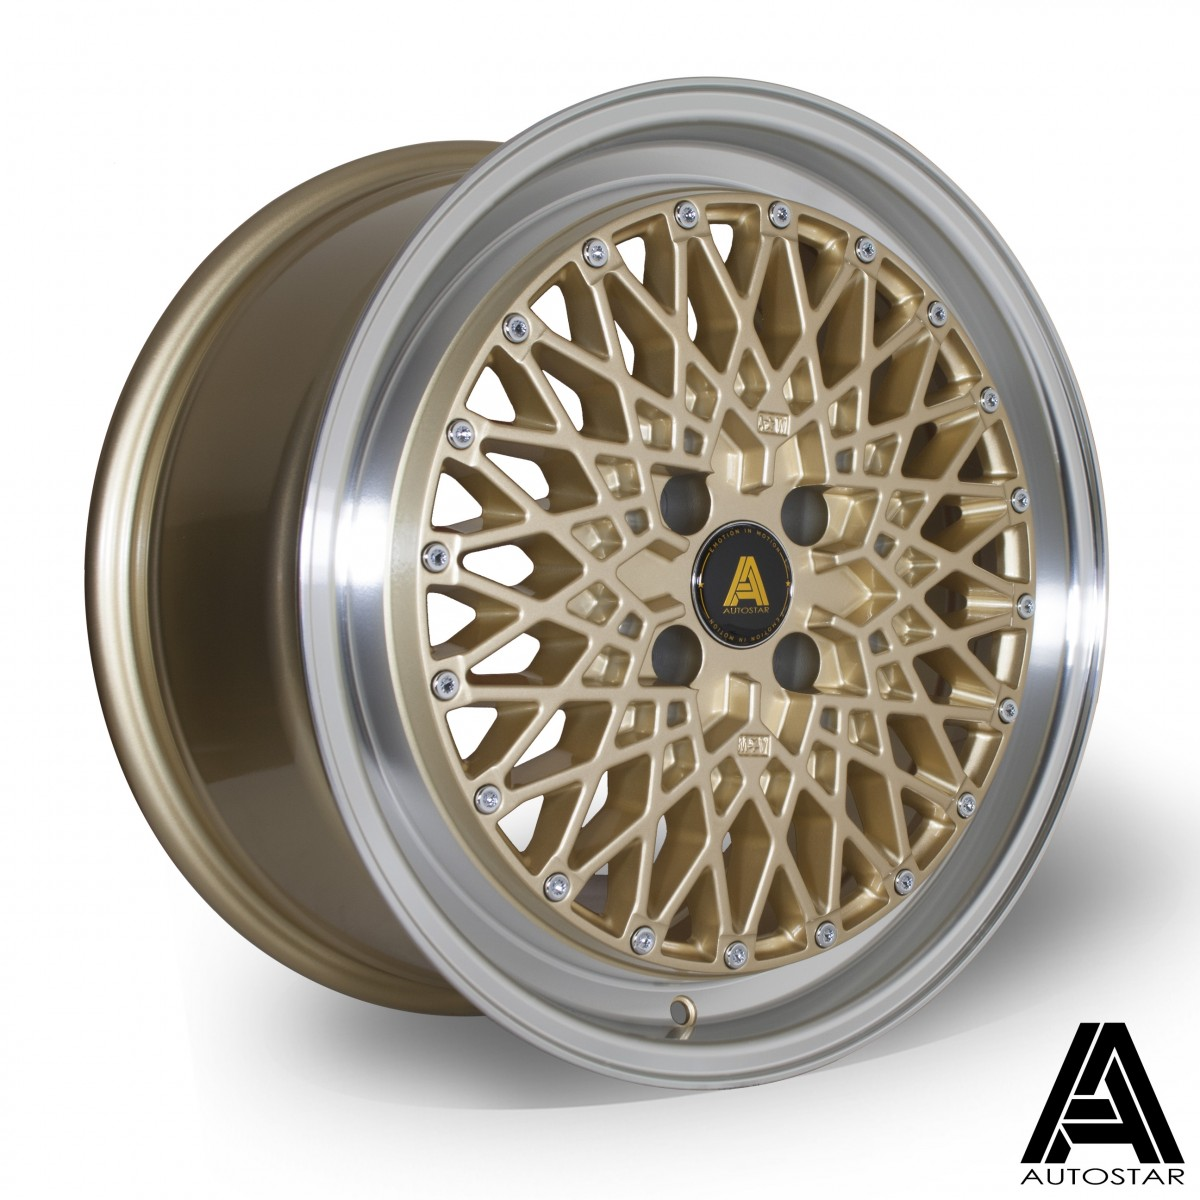 AutoStar Minus 17x8.0 5x100 ET30 Polished with Gold Centre - Set of 4